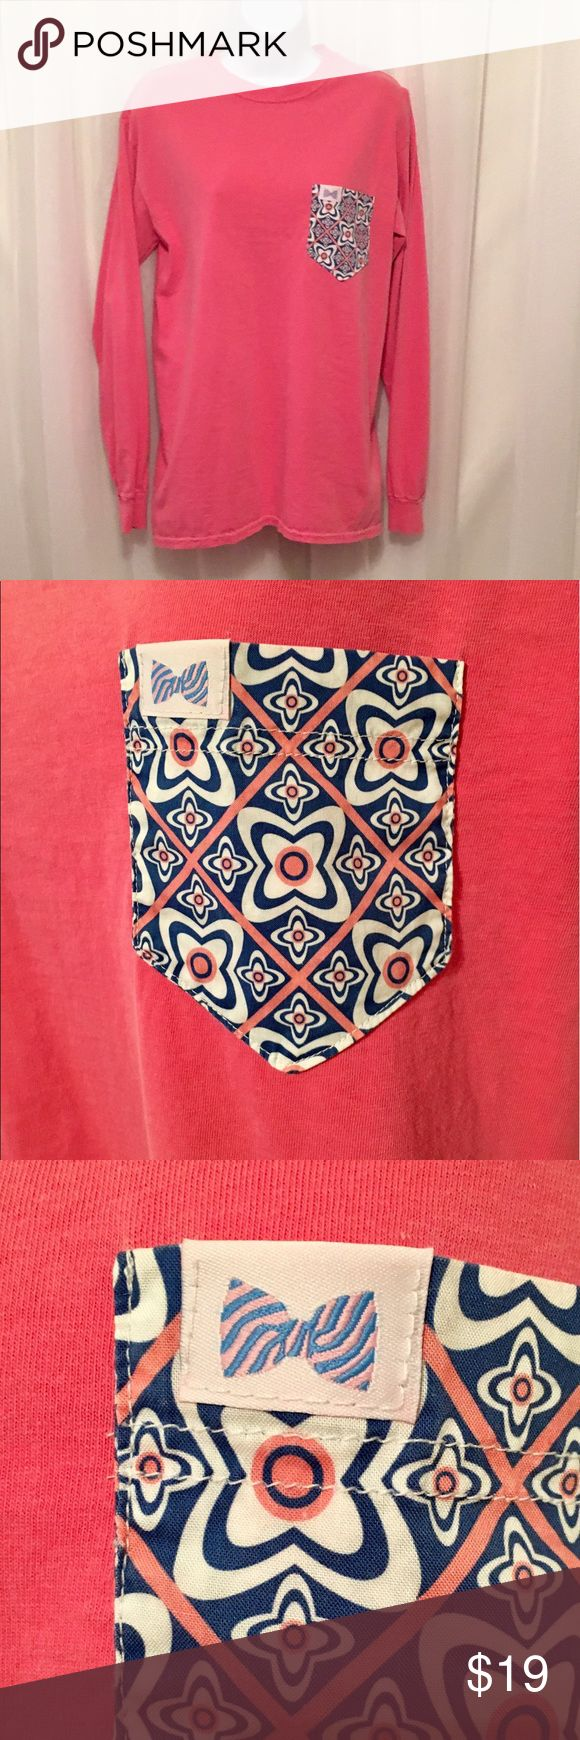 Fraternity Collection LS Tee Fraternity Collection brand, Long sleeve pink tee with pocket. Size s. Has pink, blue and cream abstract pocket on front. Very popular with the college crowd. A must have! Fraternity Collection Tops Tees - Long Sleeve